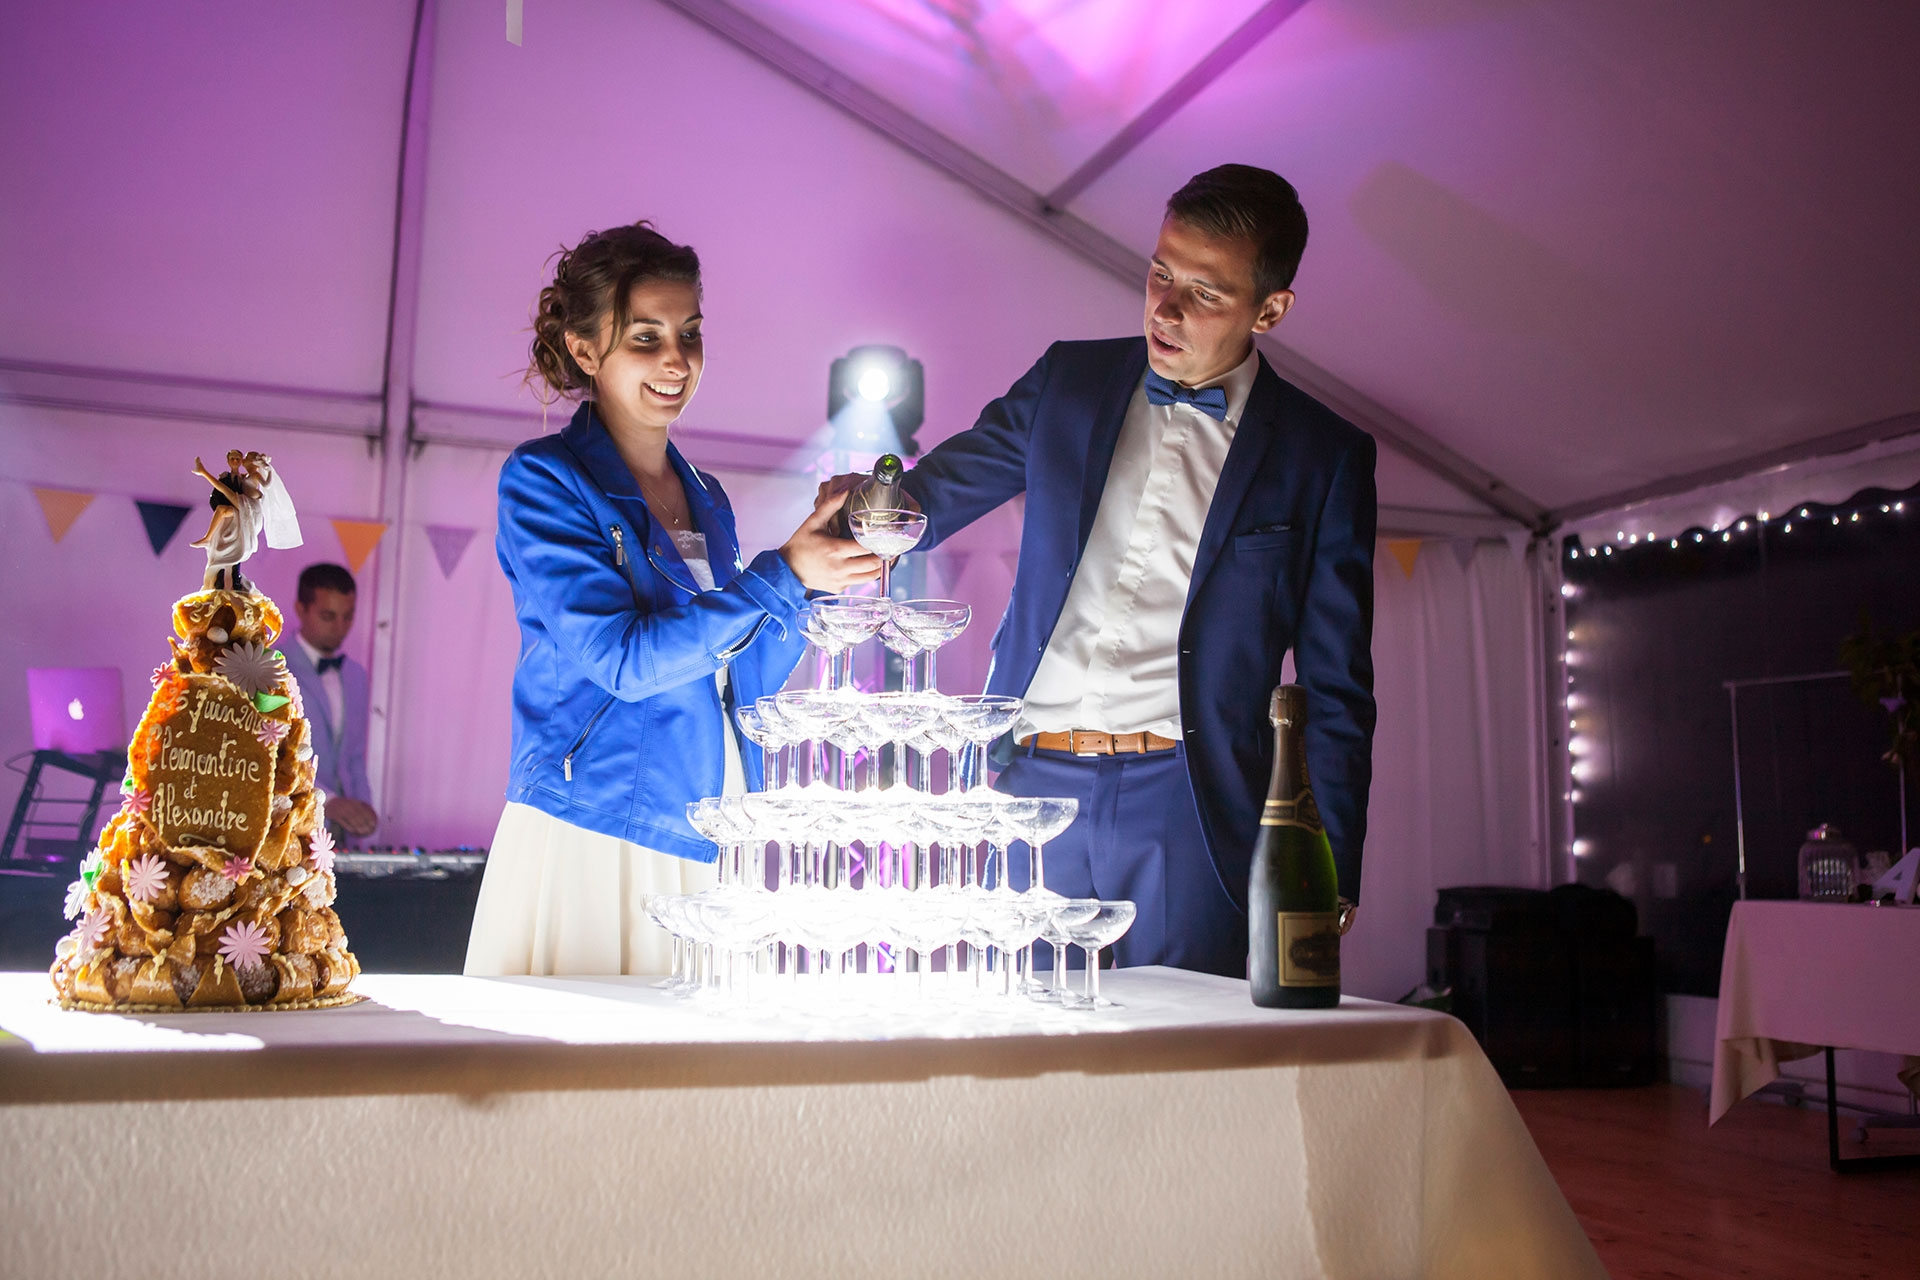 particuliers-evenements-mariages-oui-clementine&alexandre-74